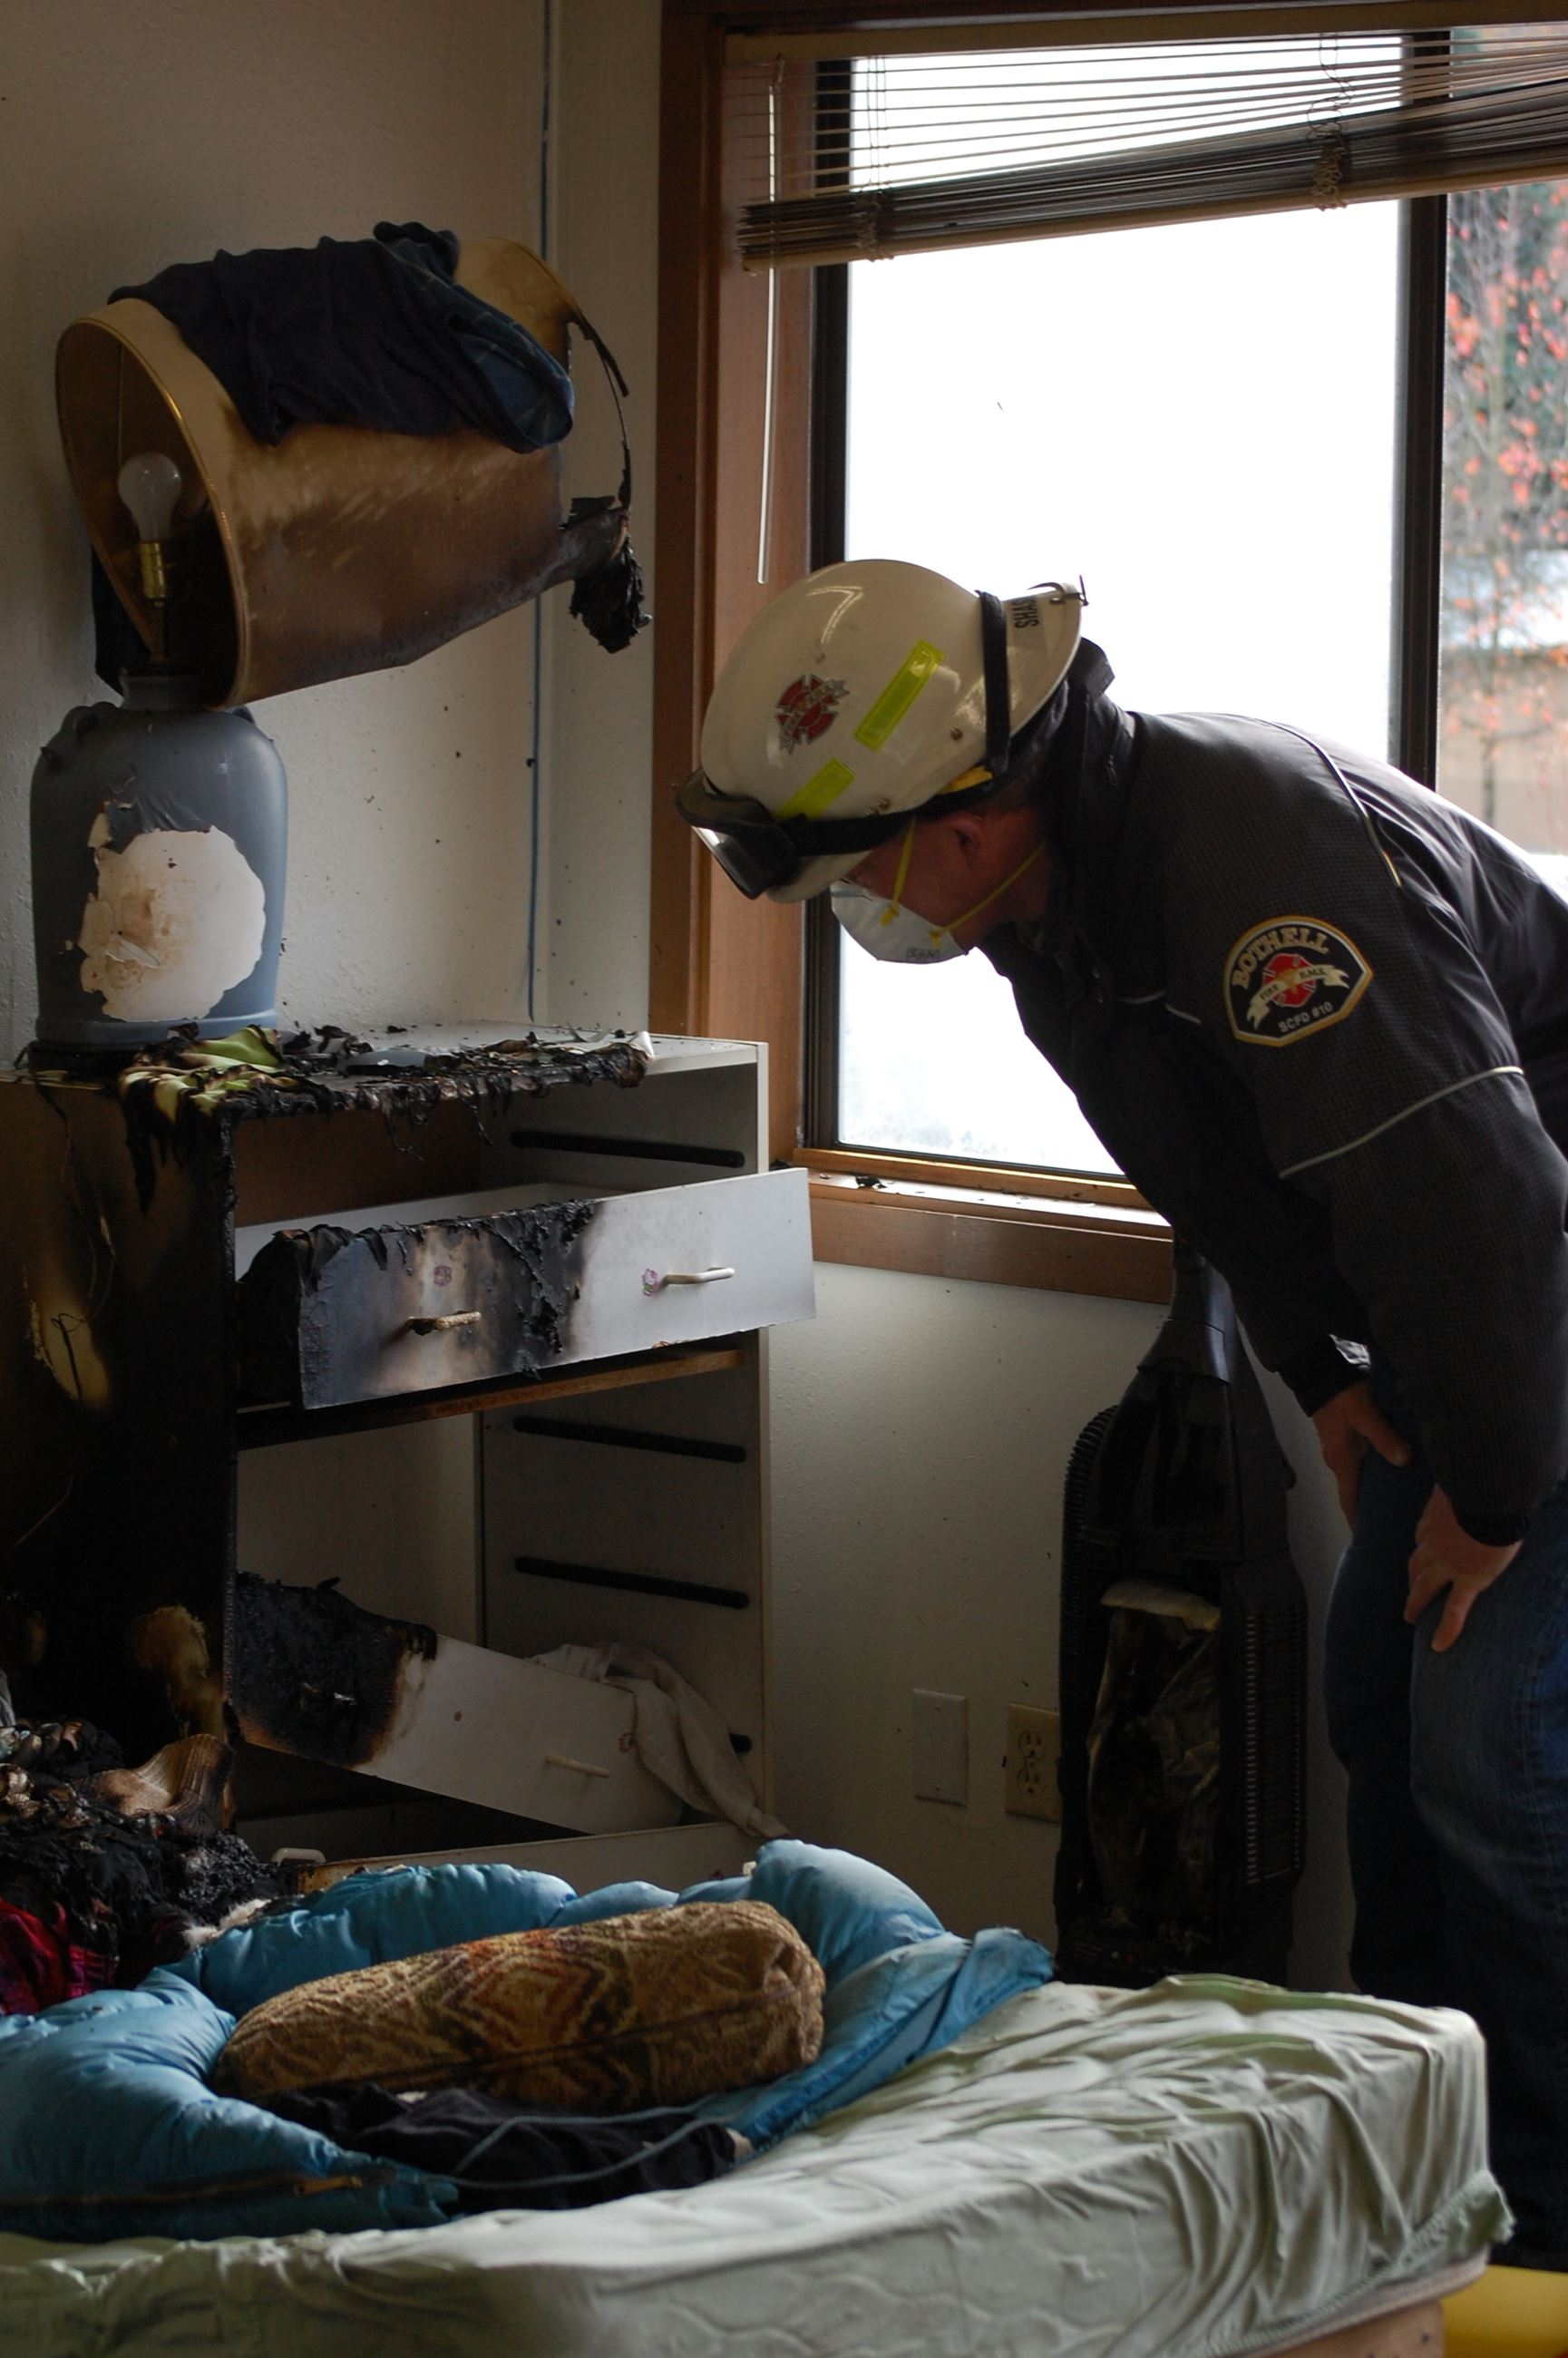 Member of the Fire Department investigating the aftermath of a fire in a home.